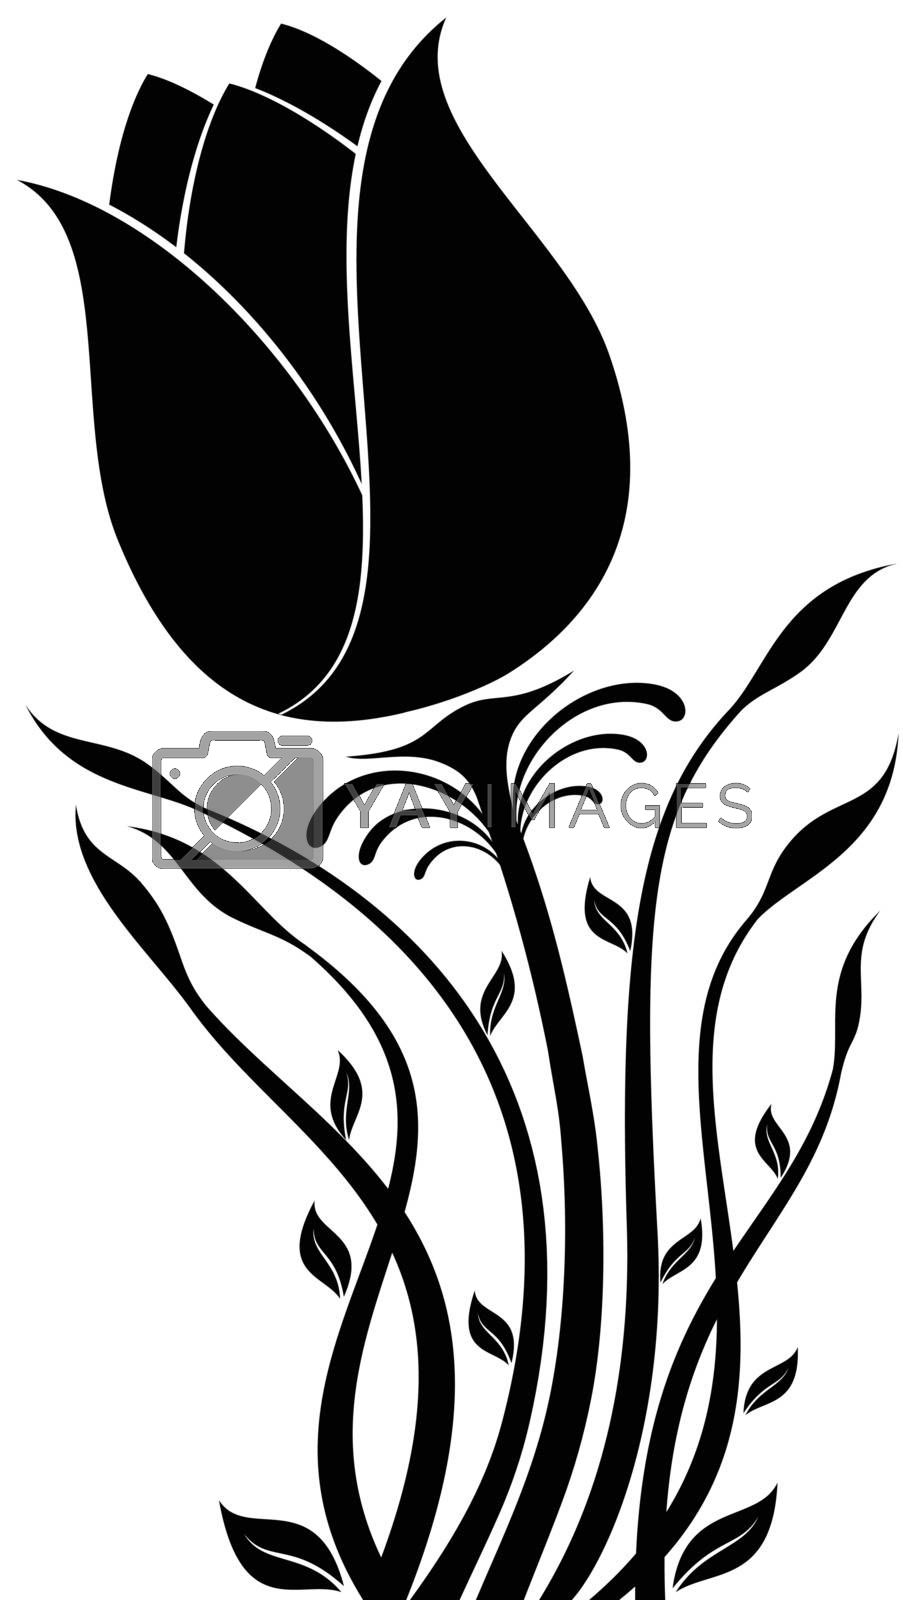 Royalty free image of Flower Silhouette by silverrose1